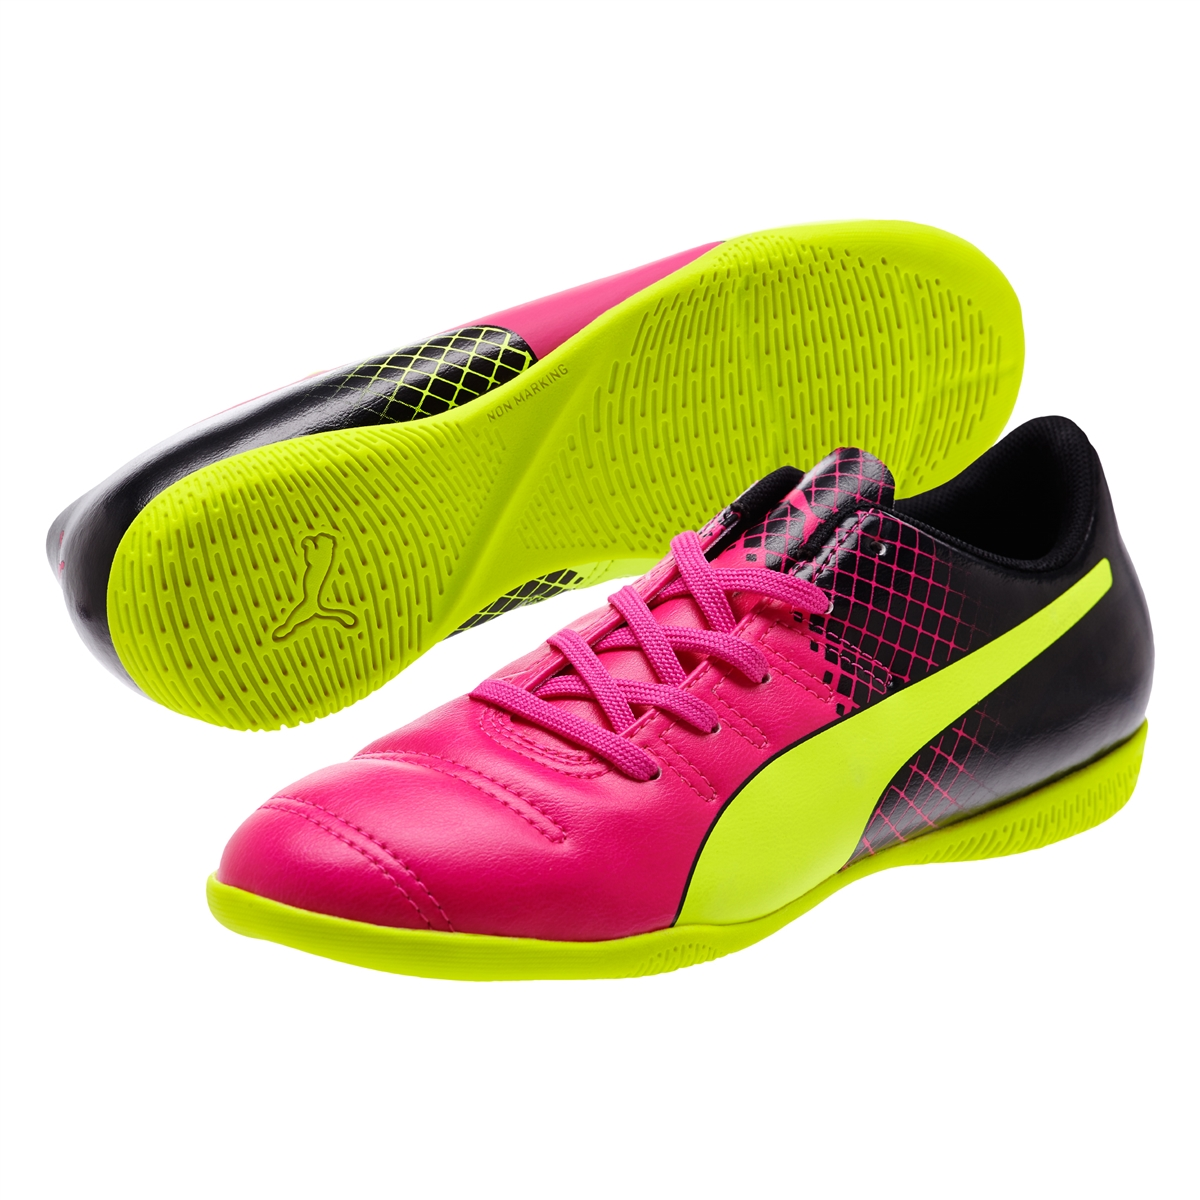 Puma evoPower 4.3 Tricks IT Pink glo safety